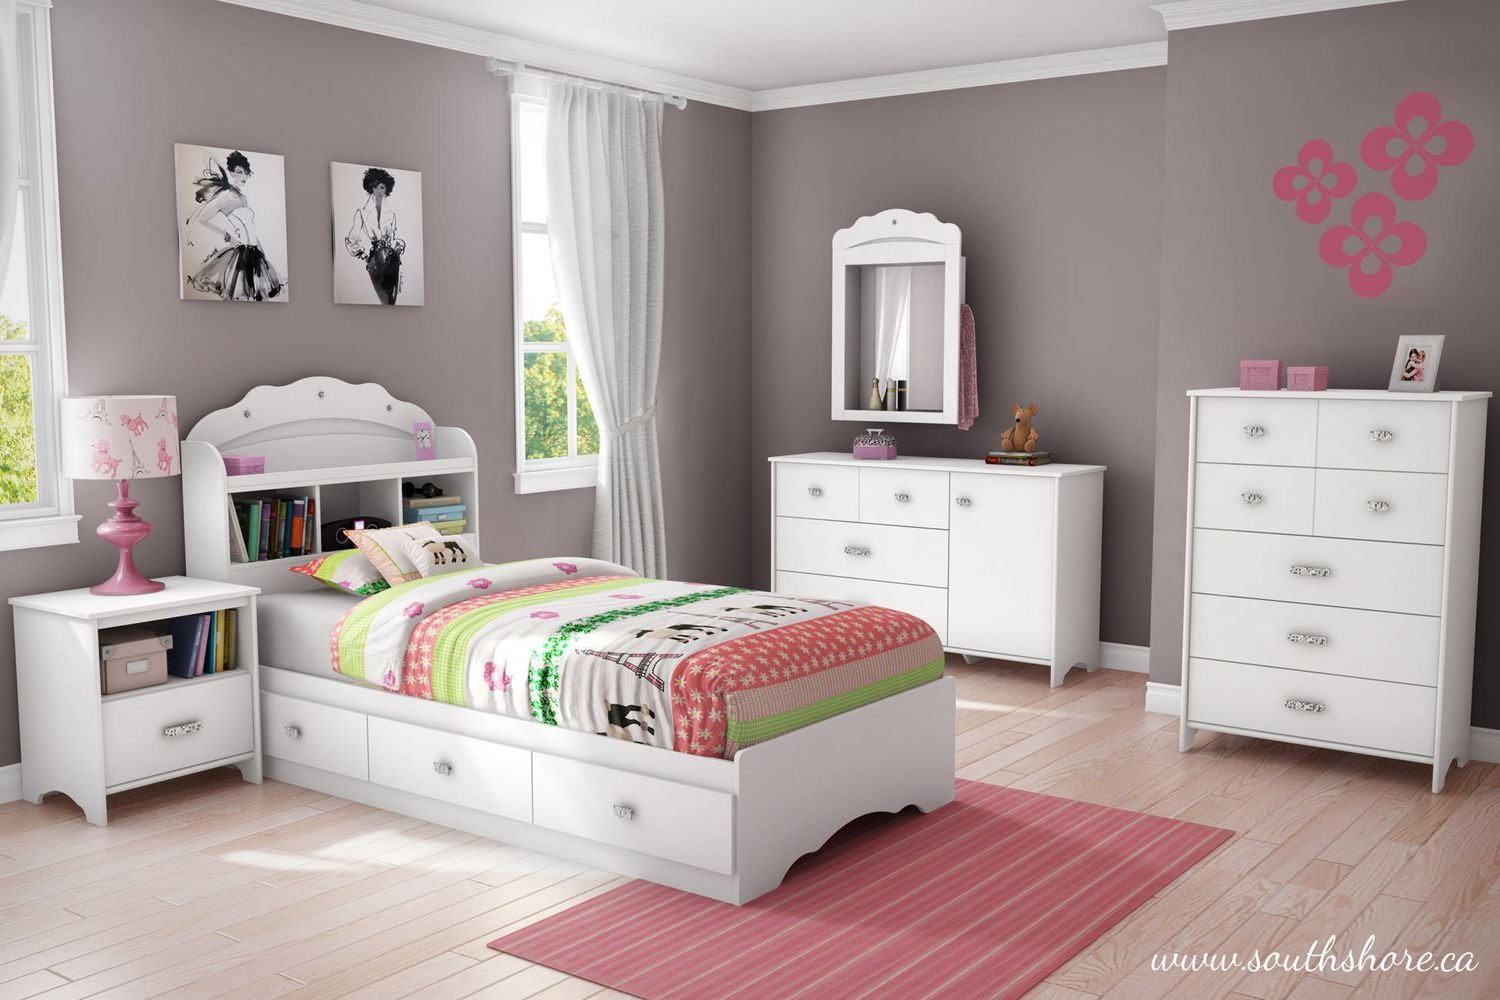 beds platform ikea and frame twin bedroom bed furniture with kids storage for boy girl